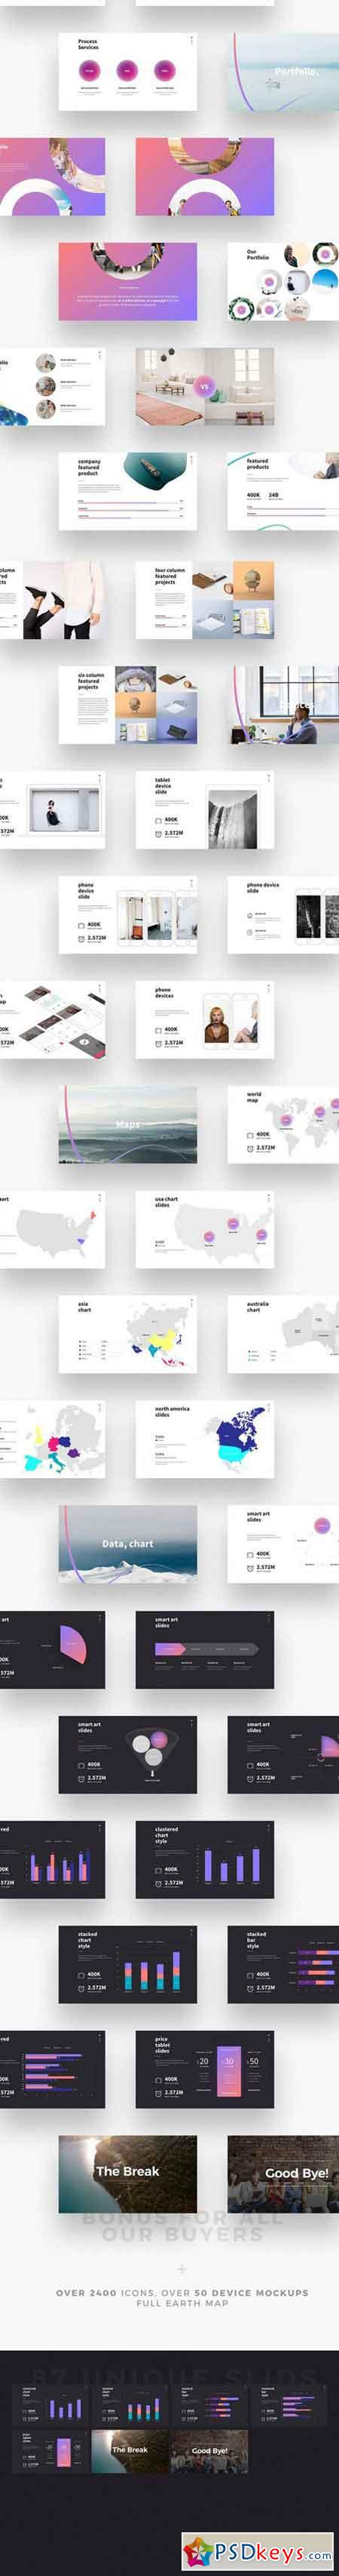 SHAPER - Keynote Template 2058768